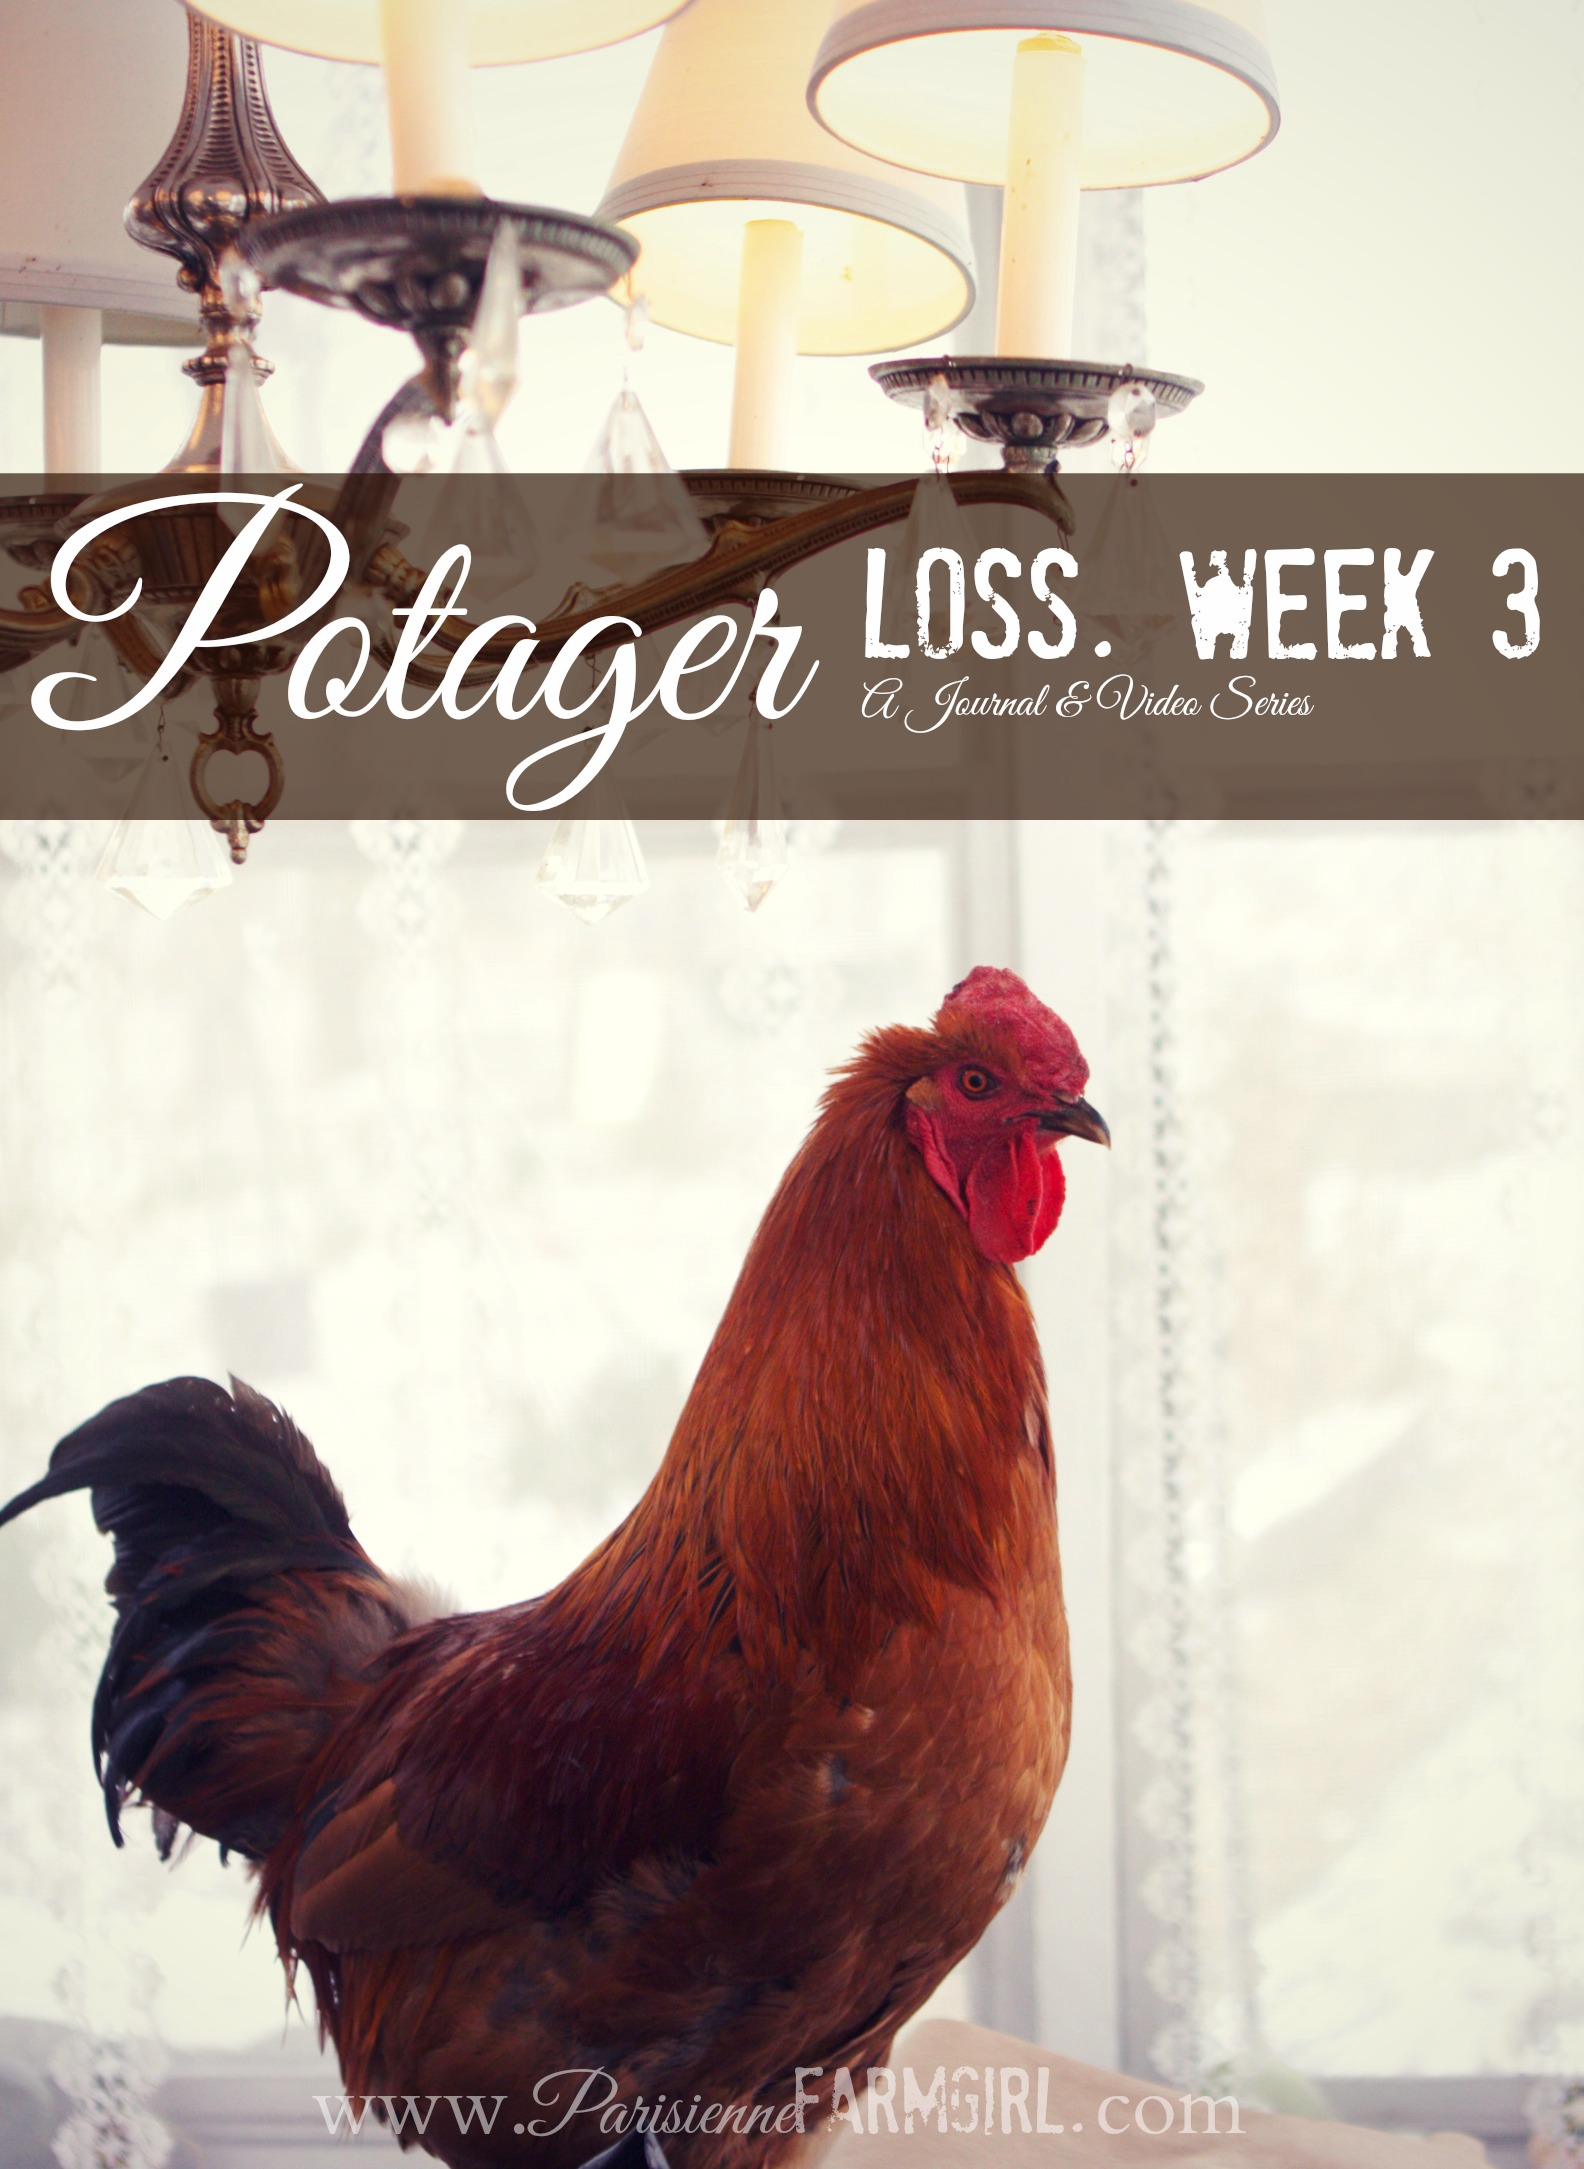 Potater Week 3… Loss on the Farm